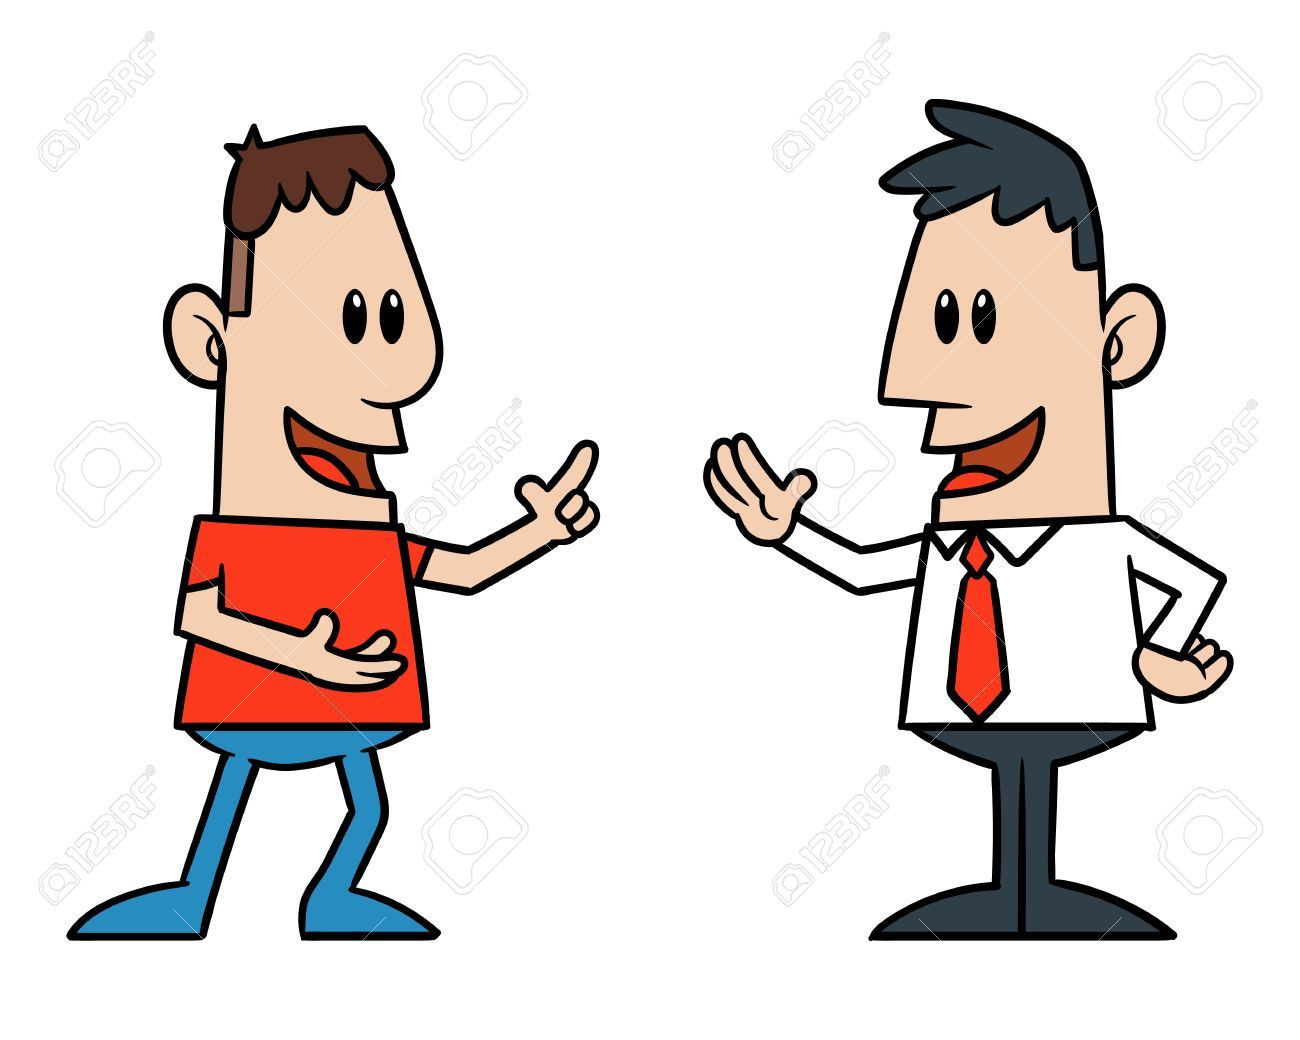 Two people talking to each other clipart 7 » Clipart Portal.